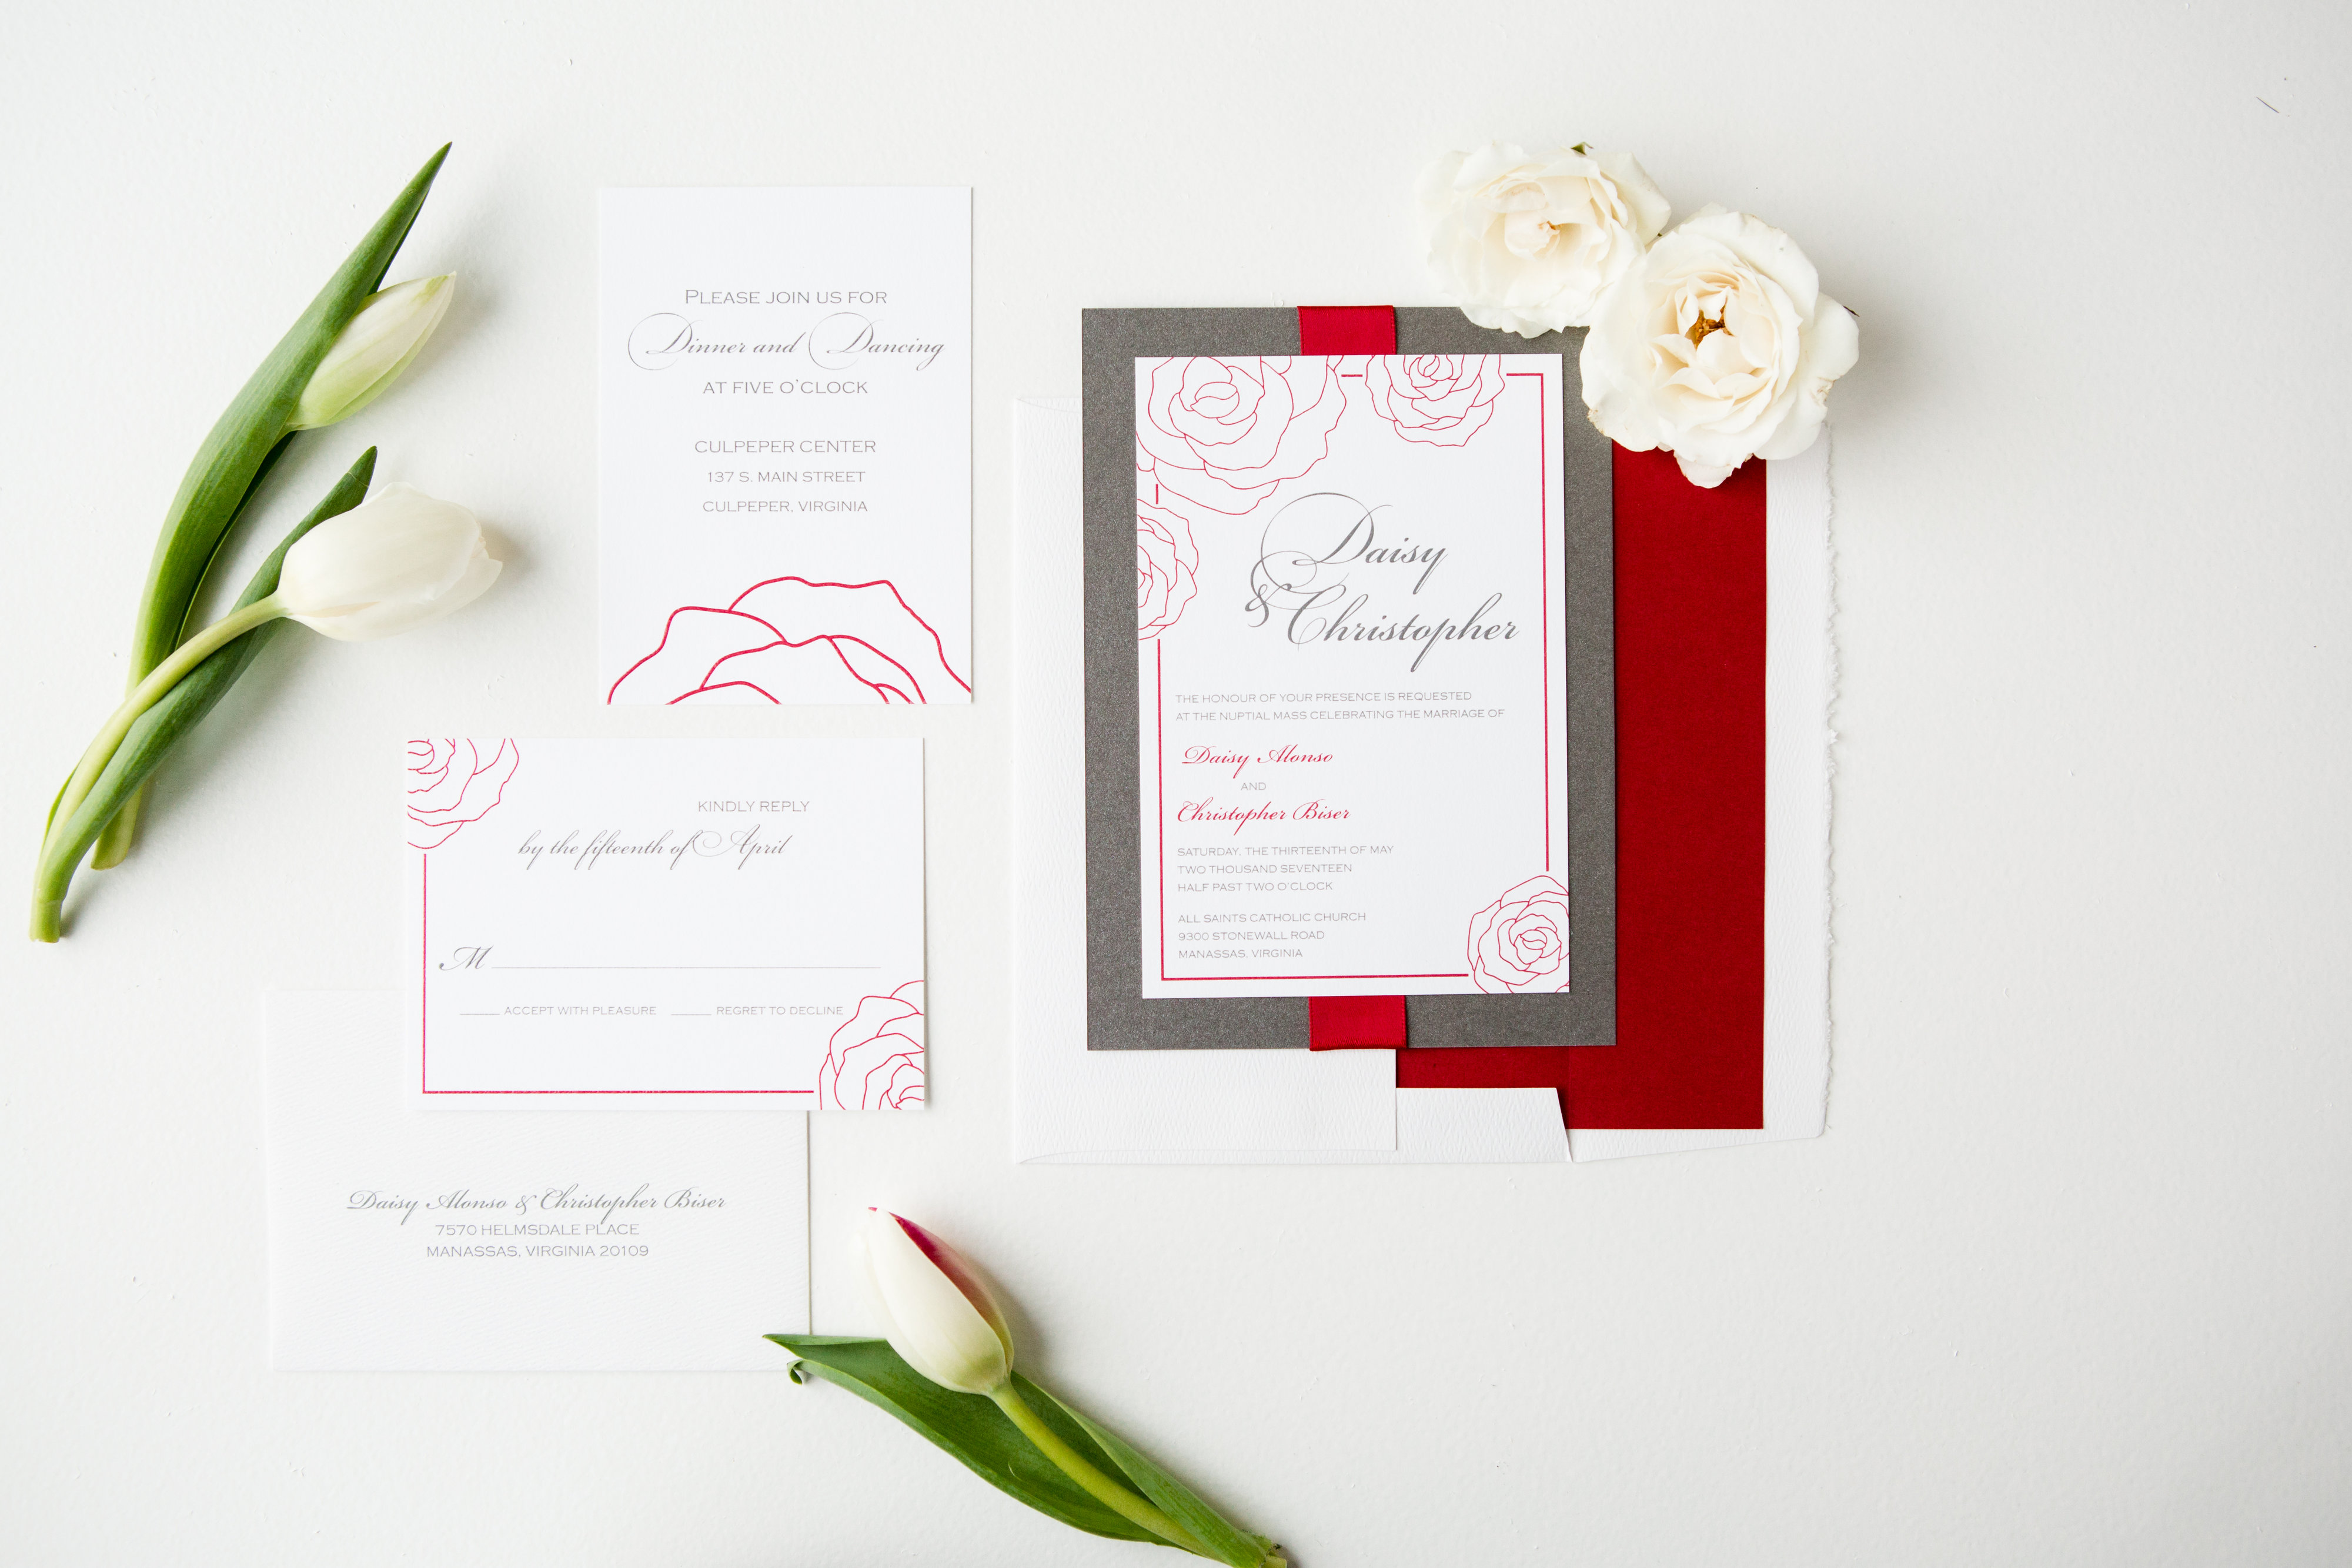 Daisy & Christopher's Red Rose Wedding Invitations